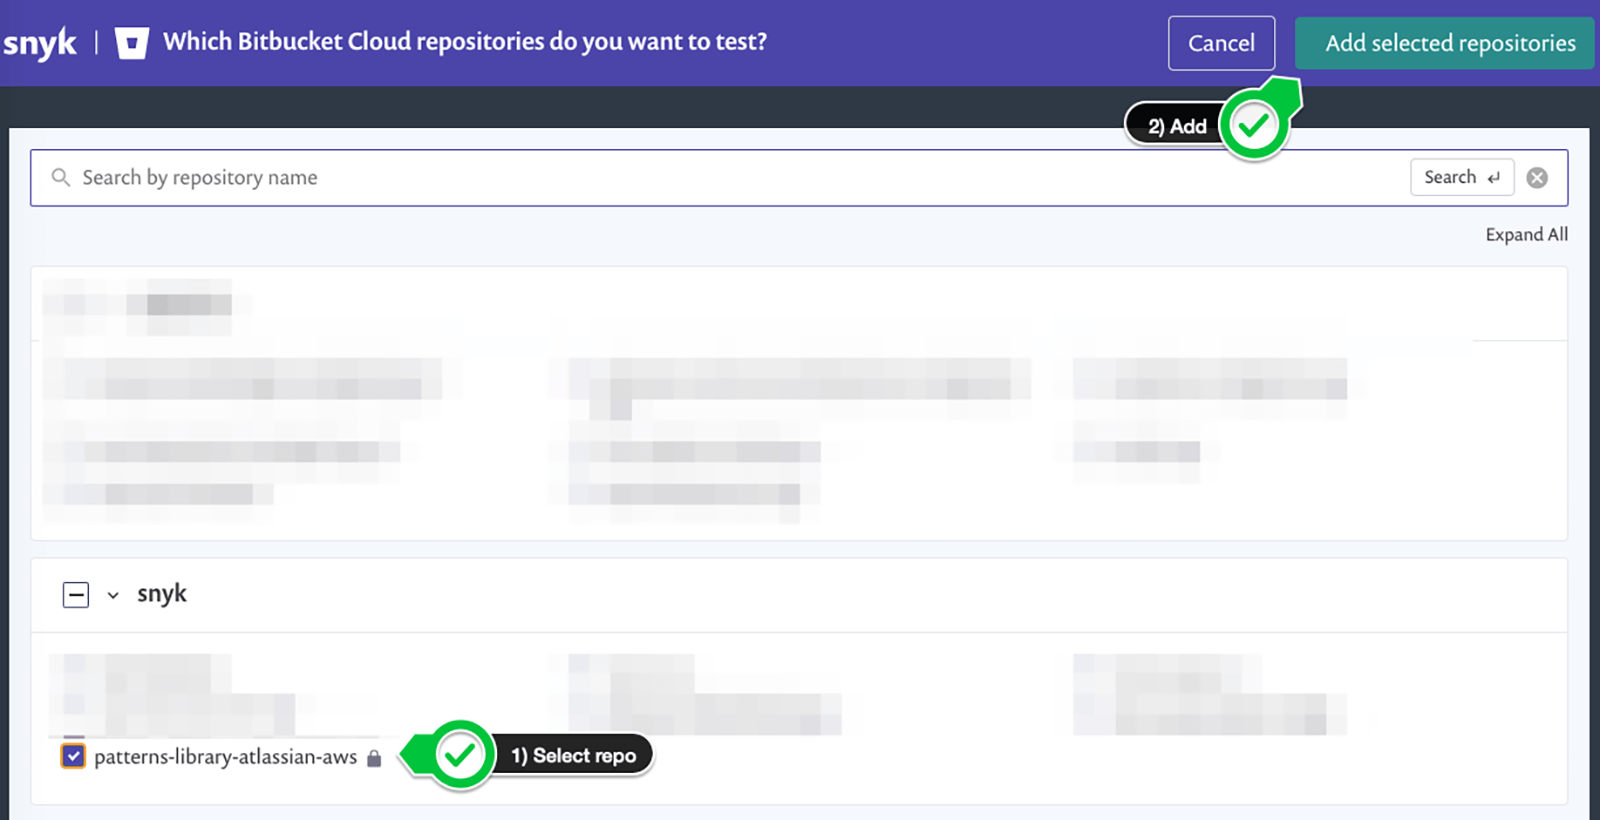 Add selected repositories button in top right corner